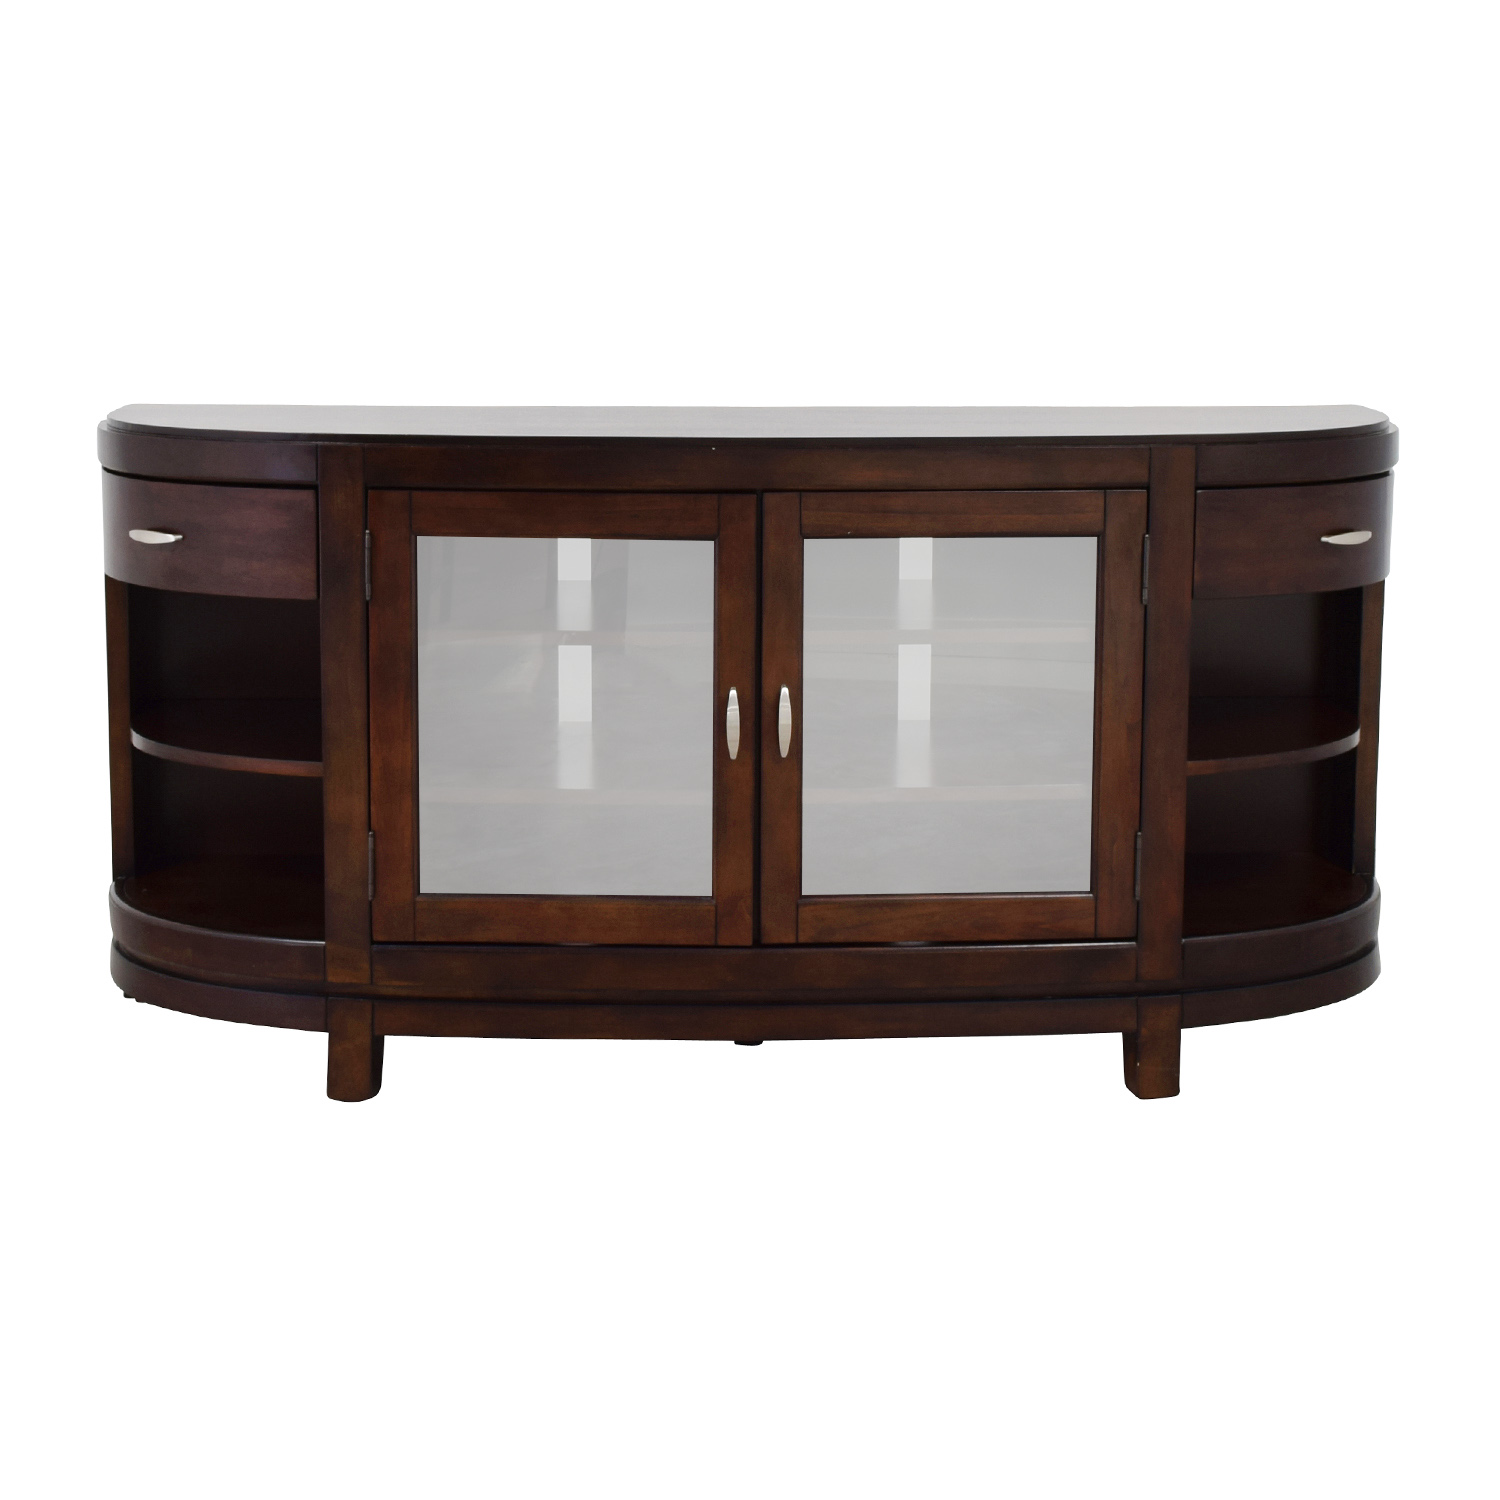 Raymour & Flanigan Raymour & Flanigan Avalon 67 TV Console for sale